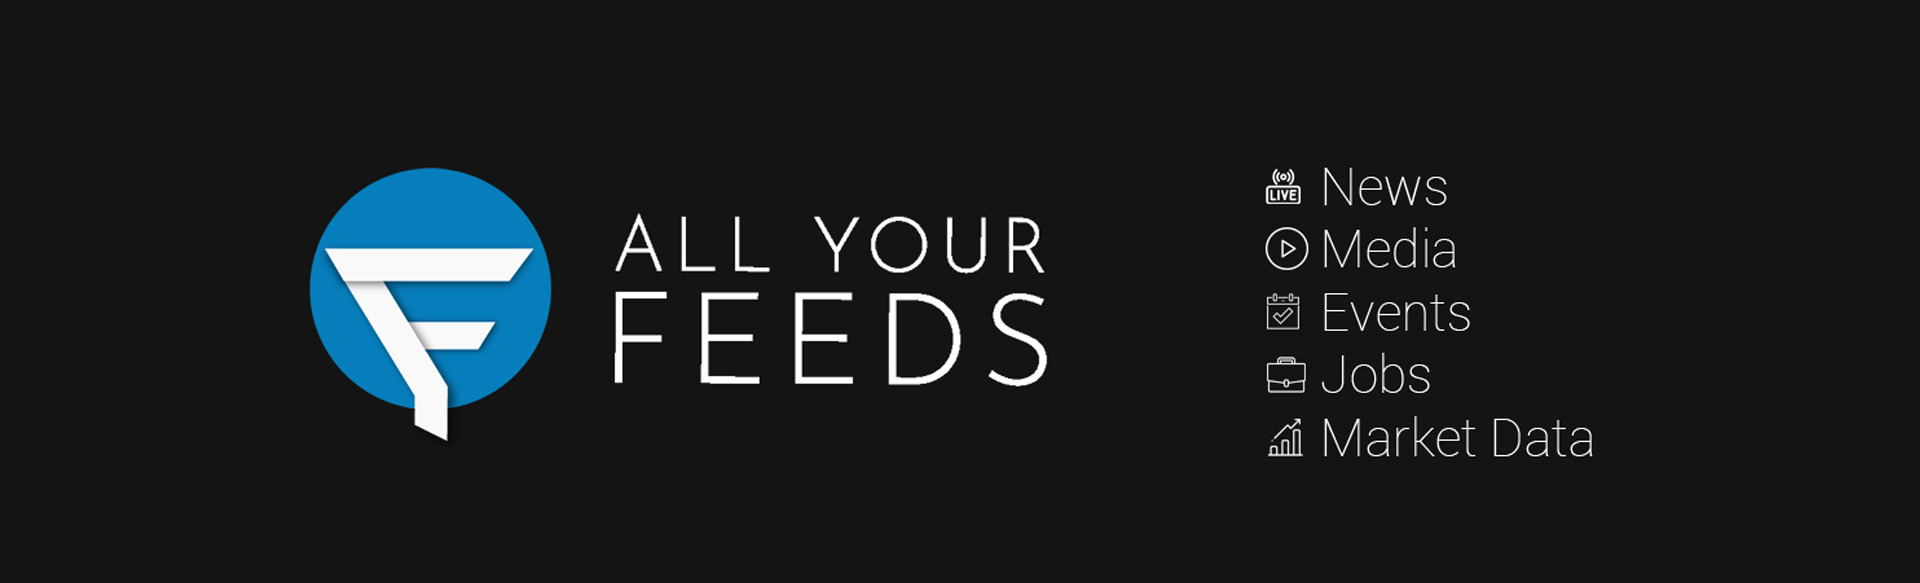 Allyourfeeds vr space